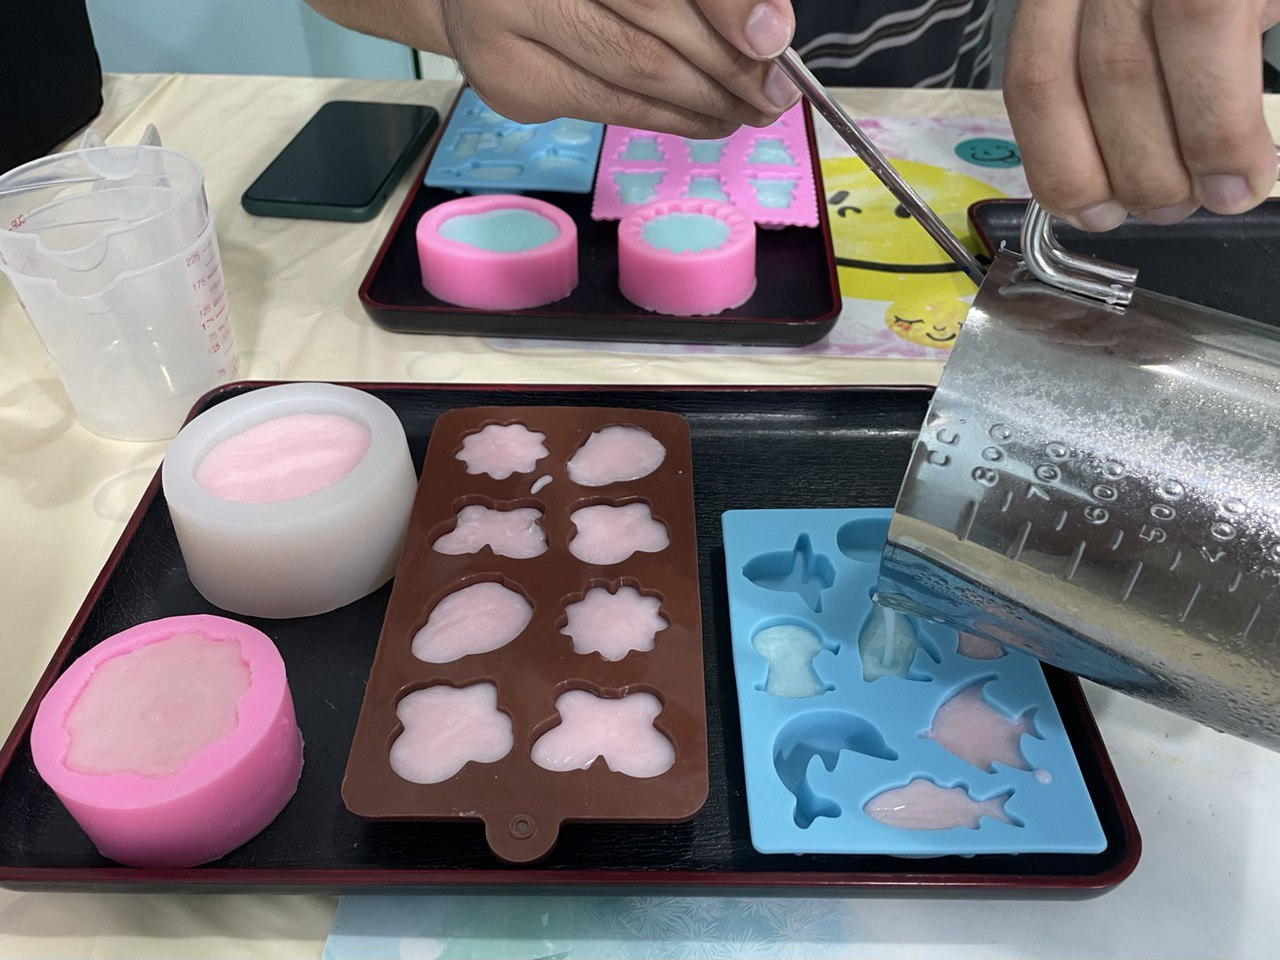 pouring the soaps into the mould